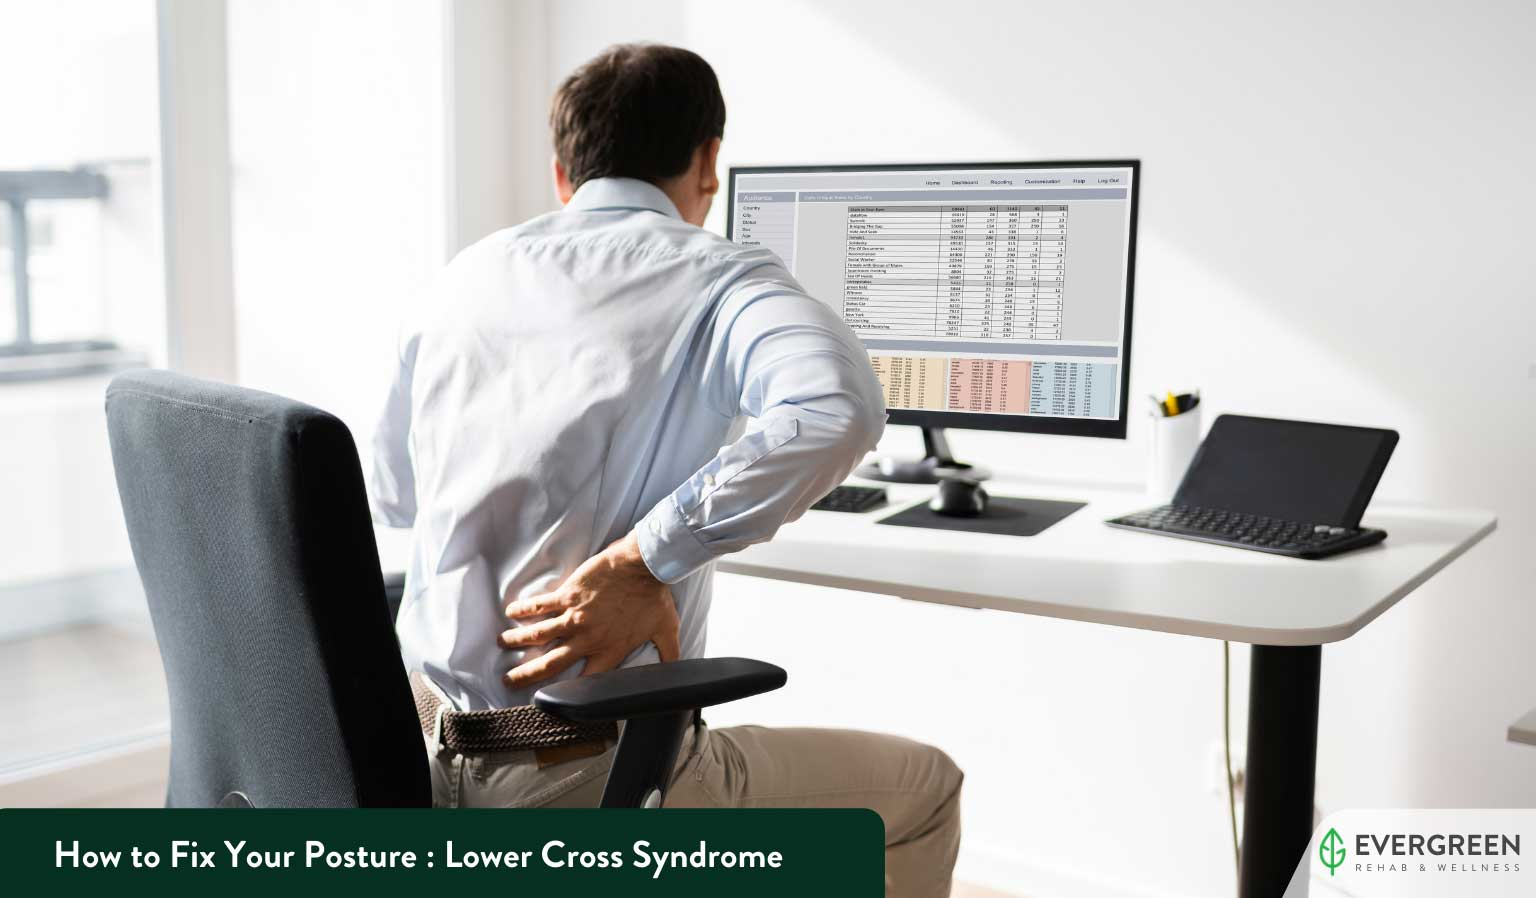 How to Fix Your Posture : Lower Cross Syndrome